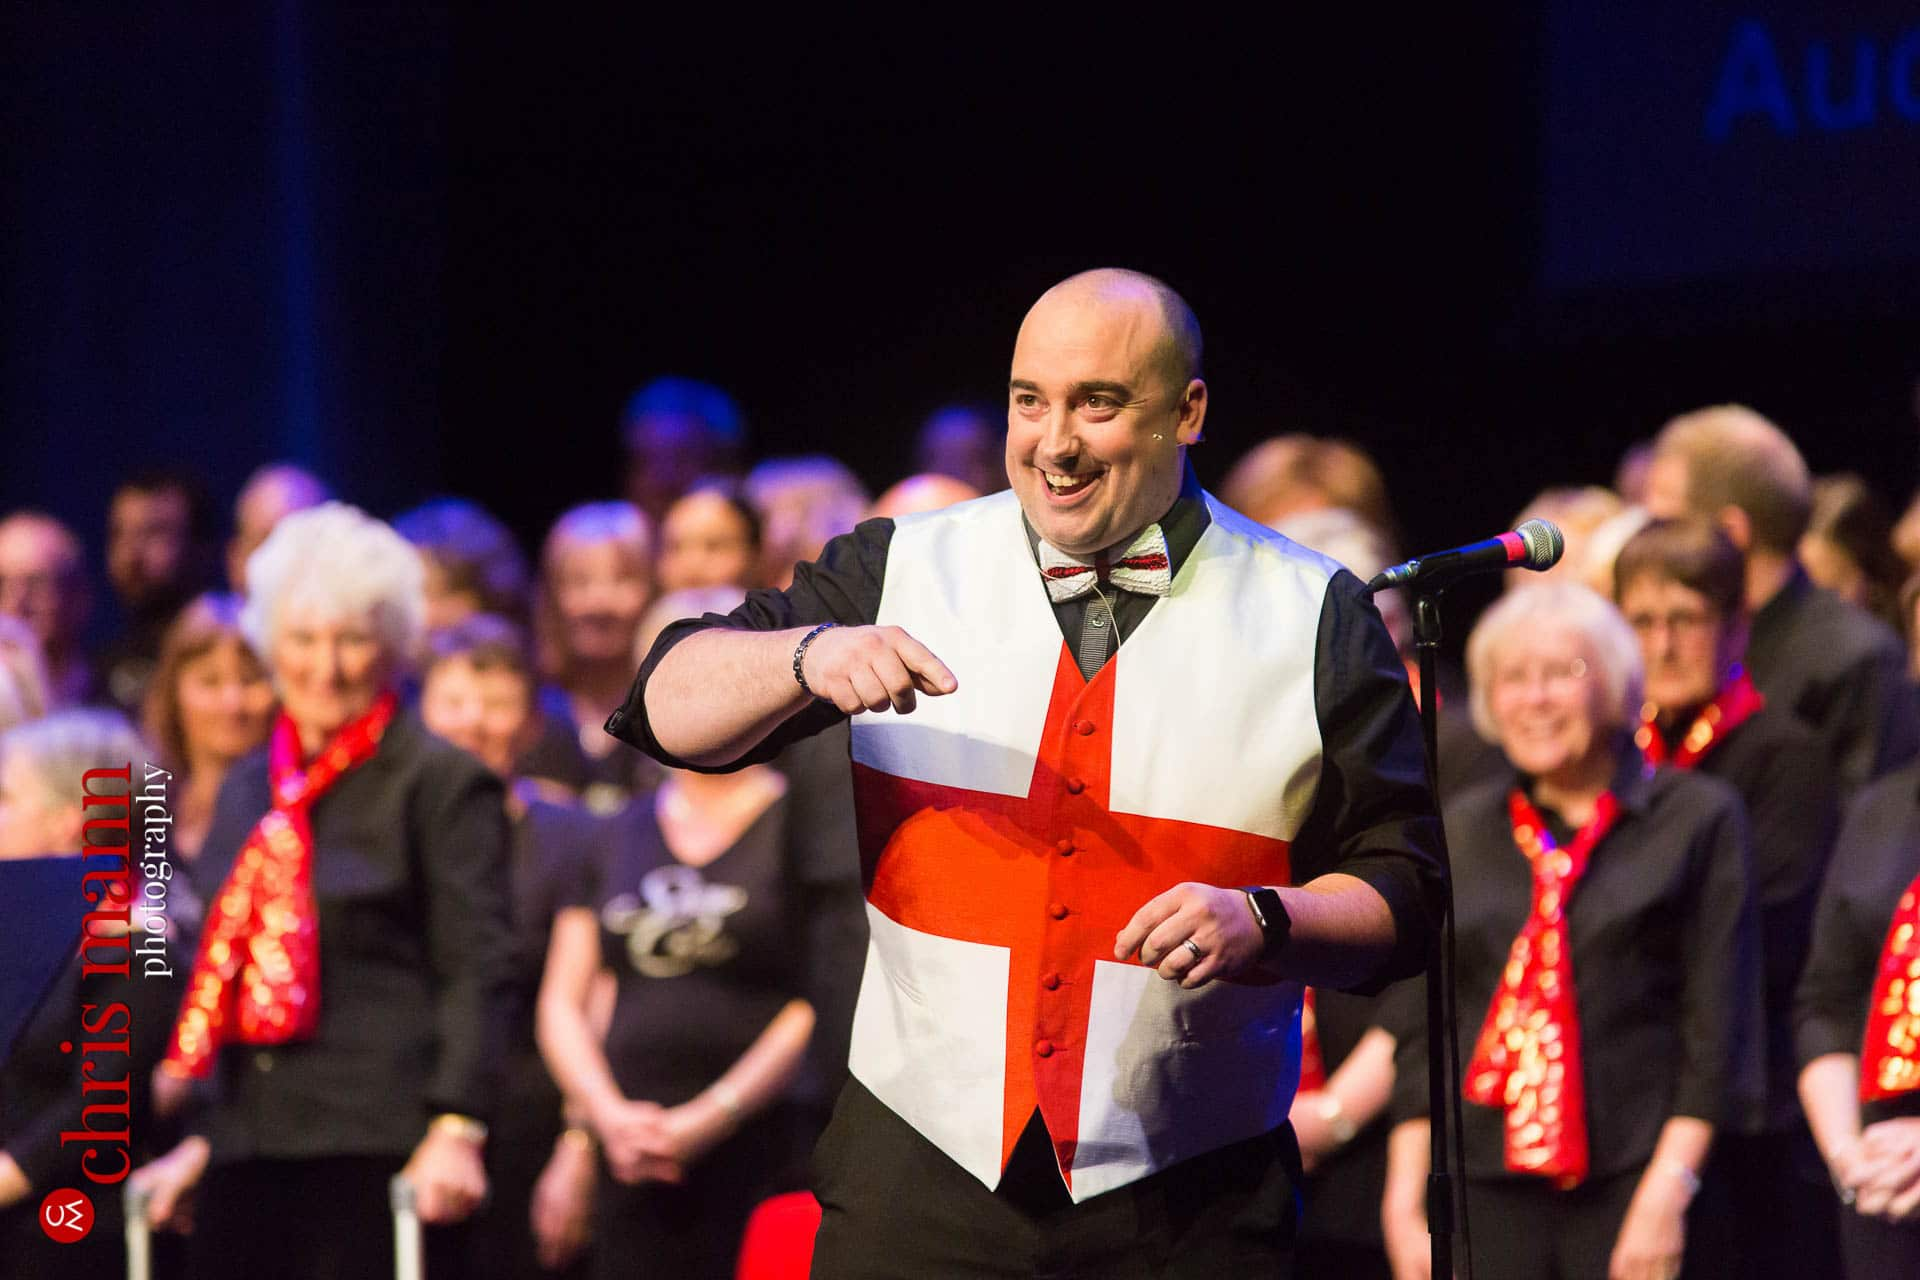 Choirmaster Sean Peters at Choiroke 2016 concert Dorking Halls